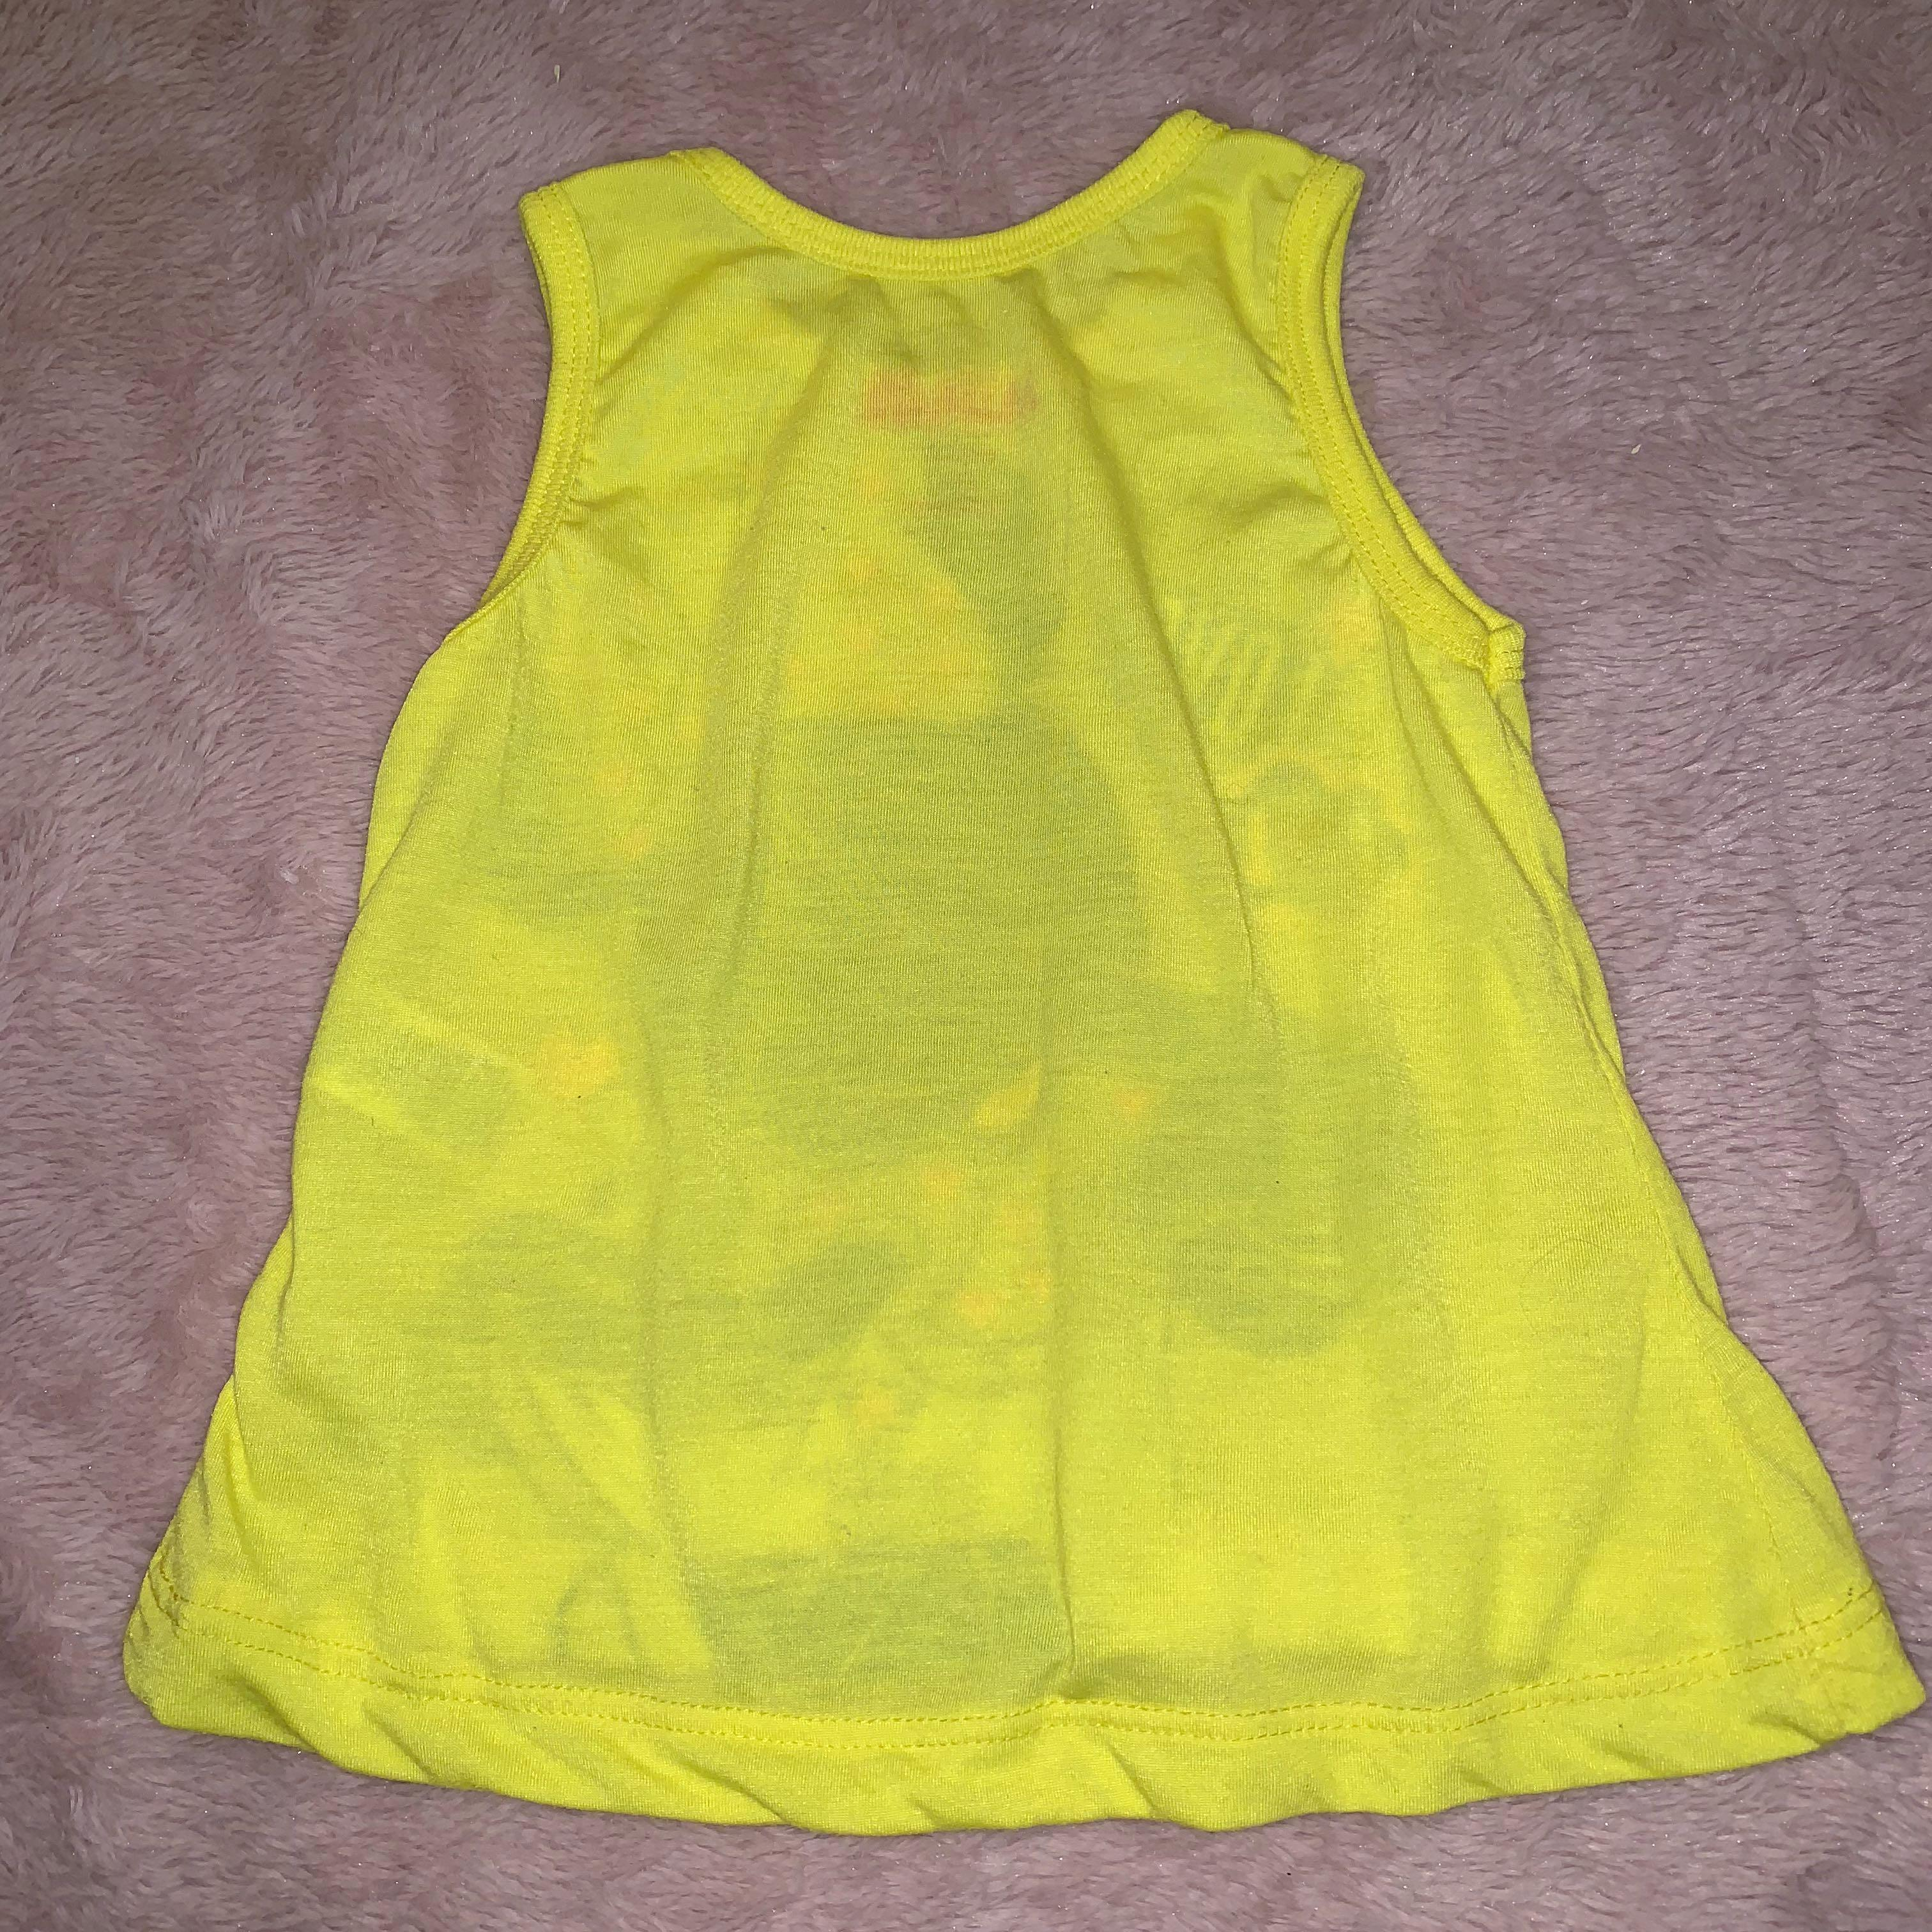 Size 4 Minnie Mouse top